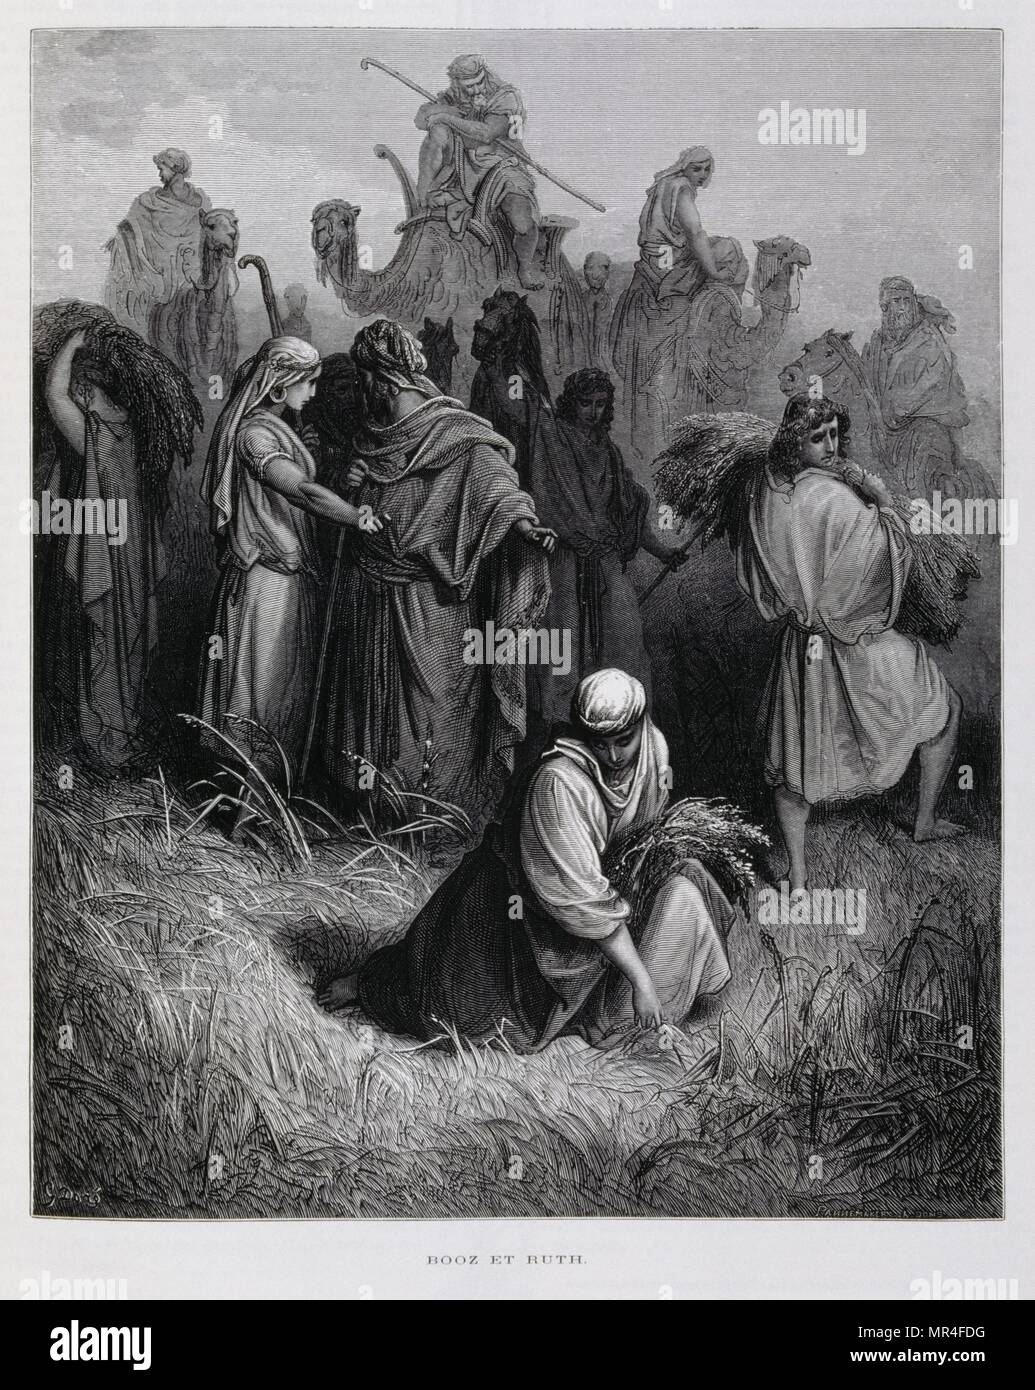 Ruth approaches Boaz and asks him to exercise his right of kinship and marry her., Illustration from the Dore Bible 1866. In 1866, the French artist and illustrator Gustave Dore (1832–1883), published a series of 241 wood engravings for a new deluxe edition of the 1843 French translation of the Vulgate Bible, popularly known as the Bible de Tours. This new edition was known as La Grande Bible de Tours and its illustrations were immensely successful. - Stock Image